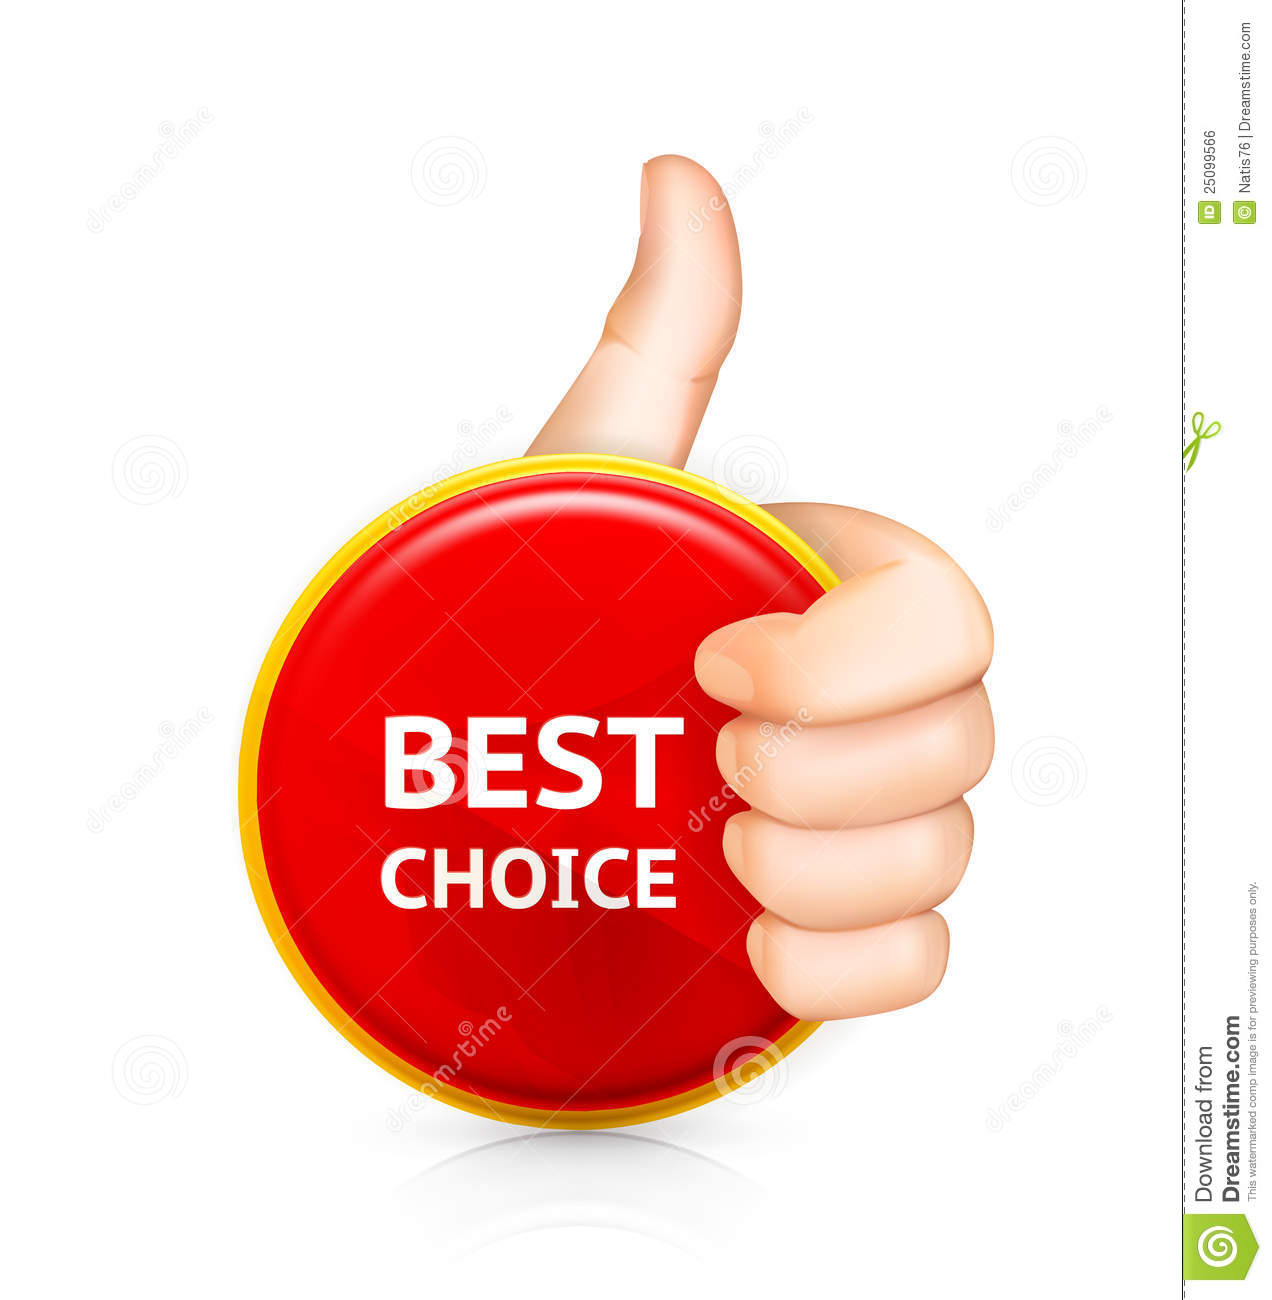 Best choice, сomputer illustration on white background.